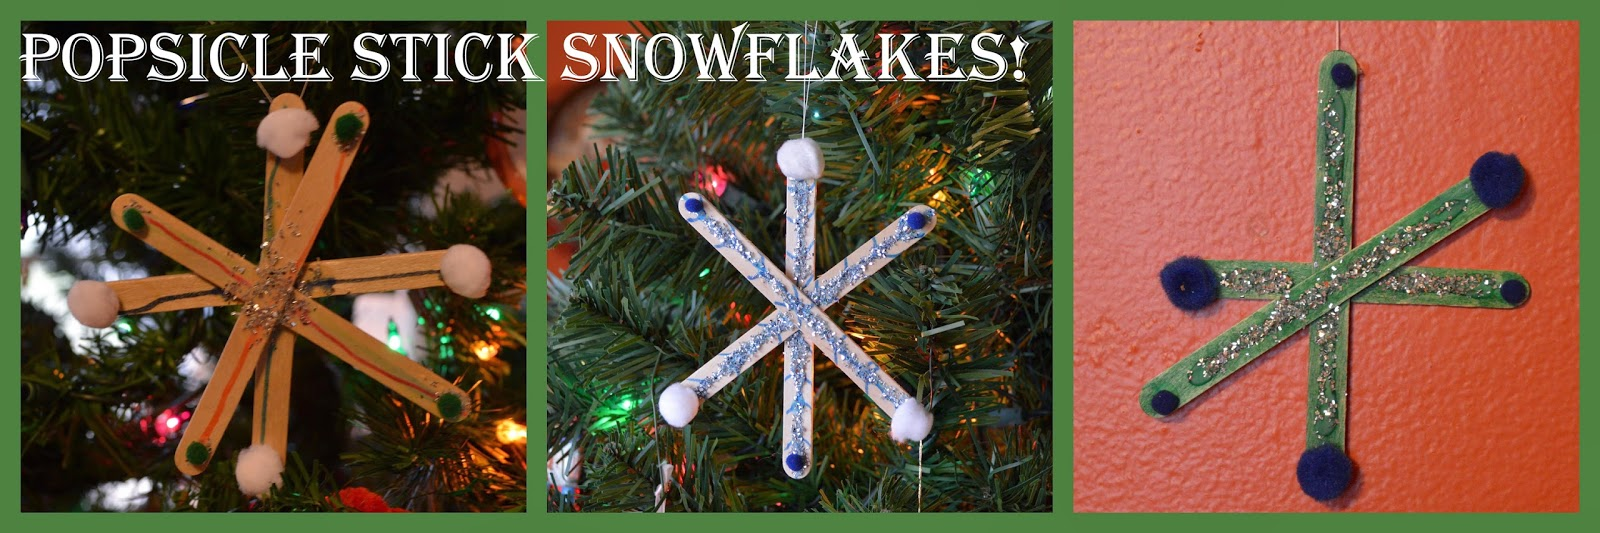 Popsicle Stick Snowflakes @ whatilivefor.net